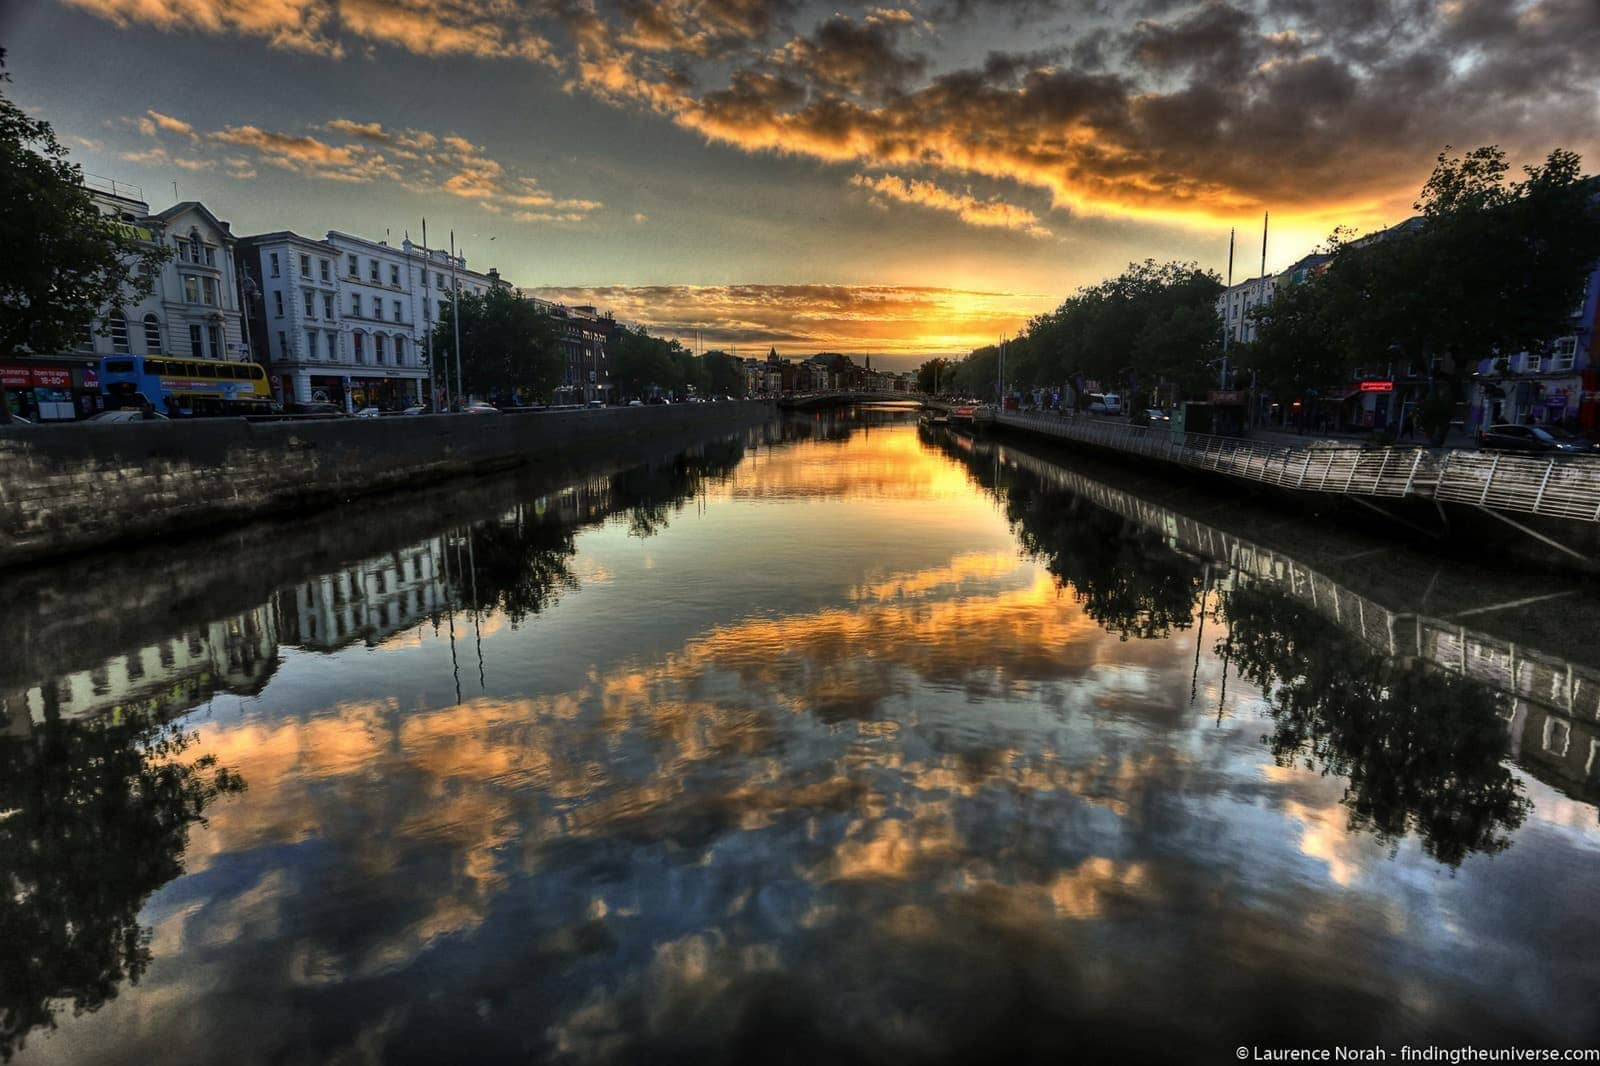 Sunset river Liffey - scaled